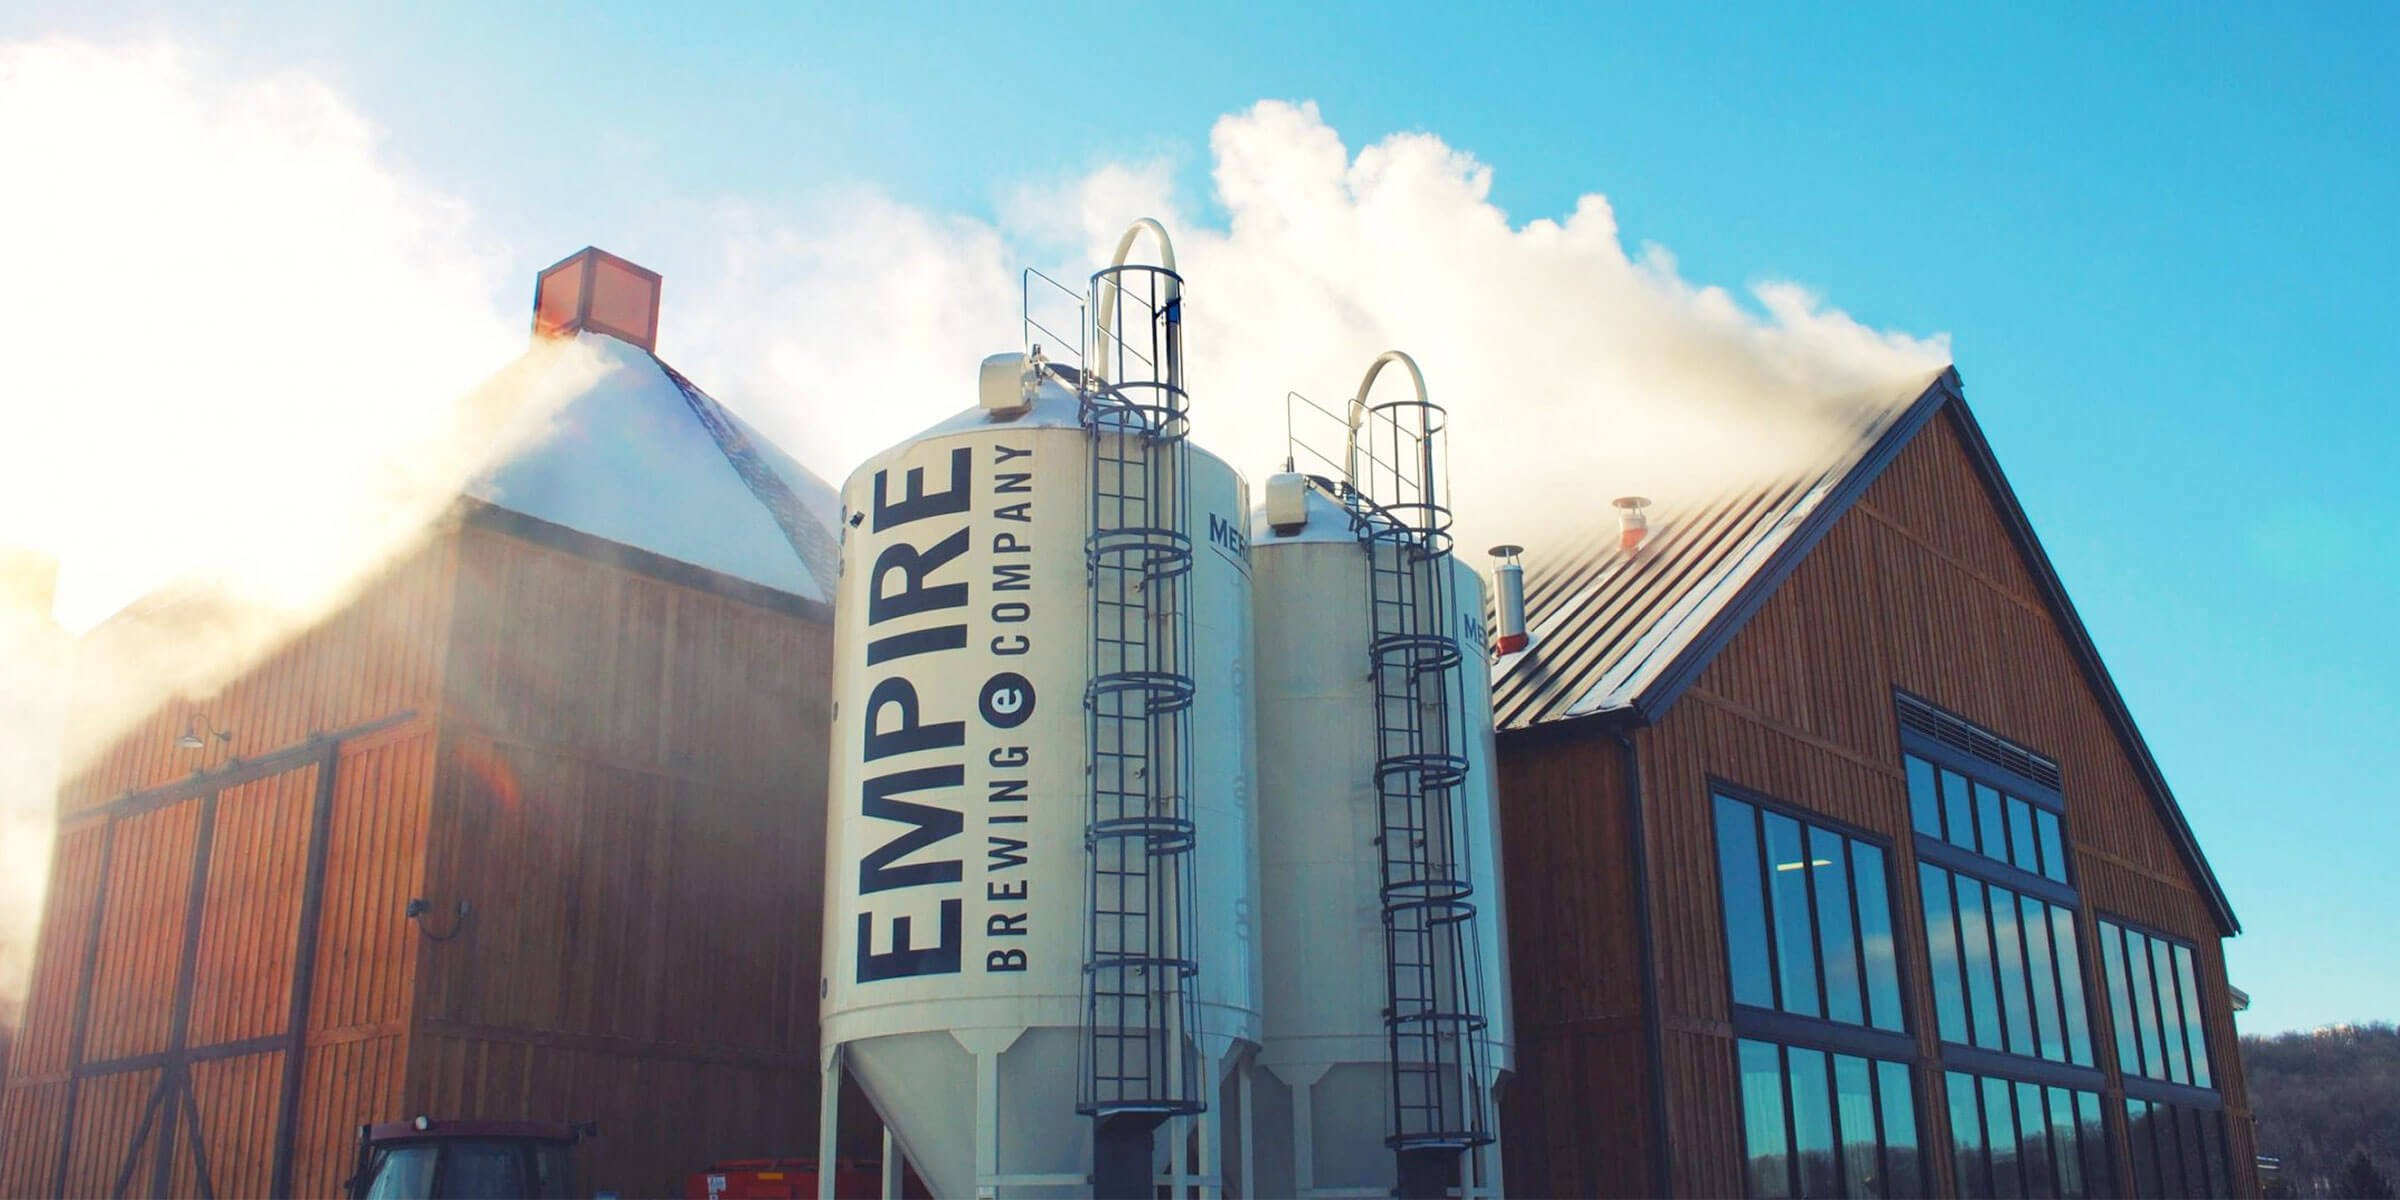 Outside the Tap Room at the Empire Farm Brewery (part of Empire Brewing Company) in Cazenovia, New York